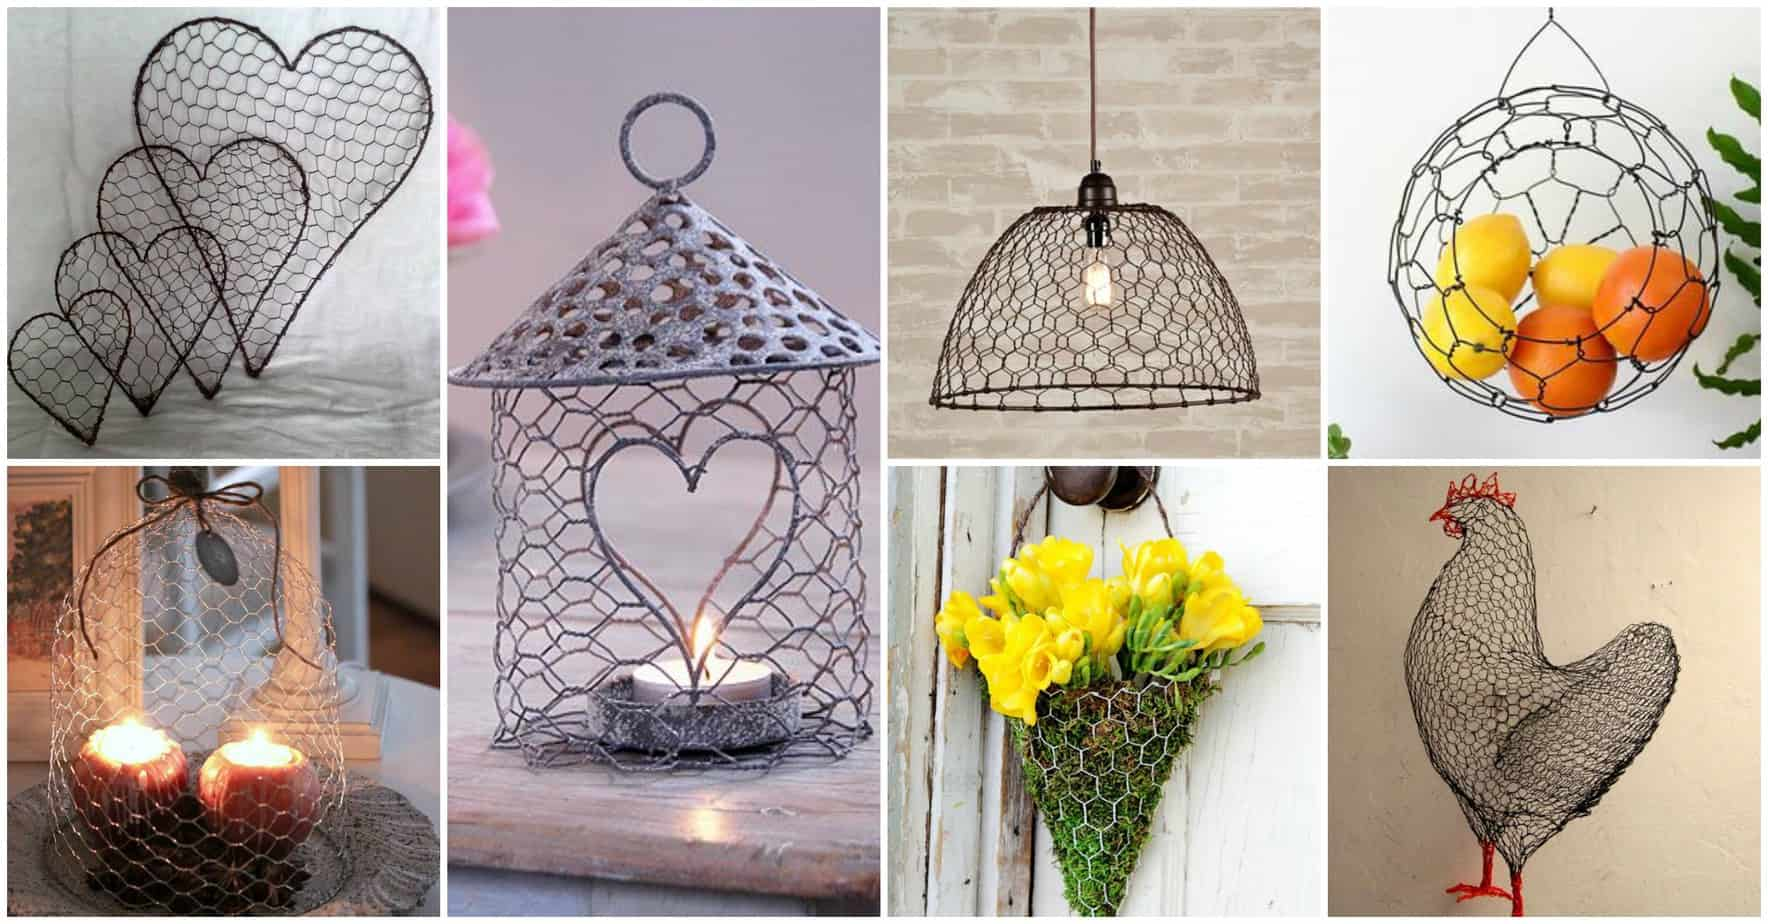 & 13 Spectacular DIY Chicken Wire Craft Ideas